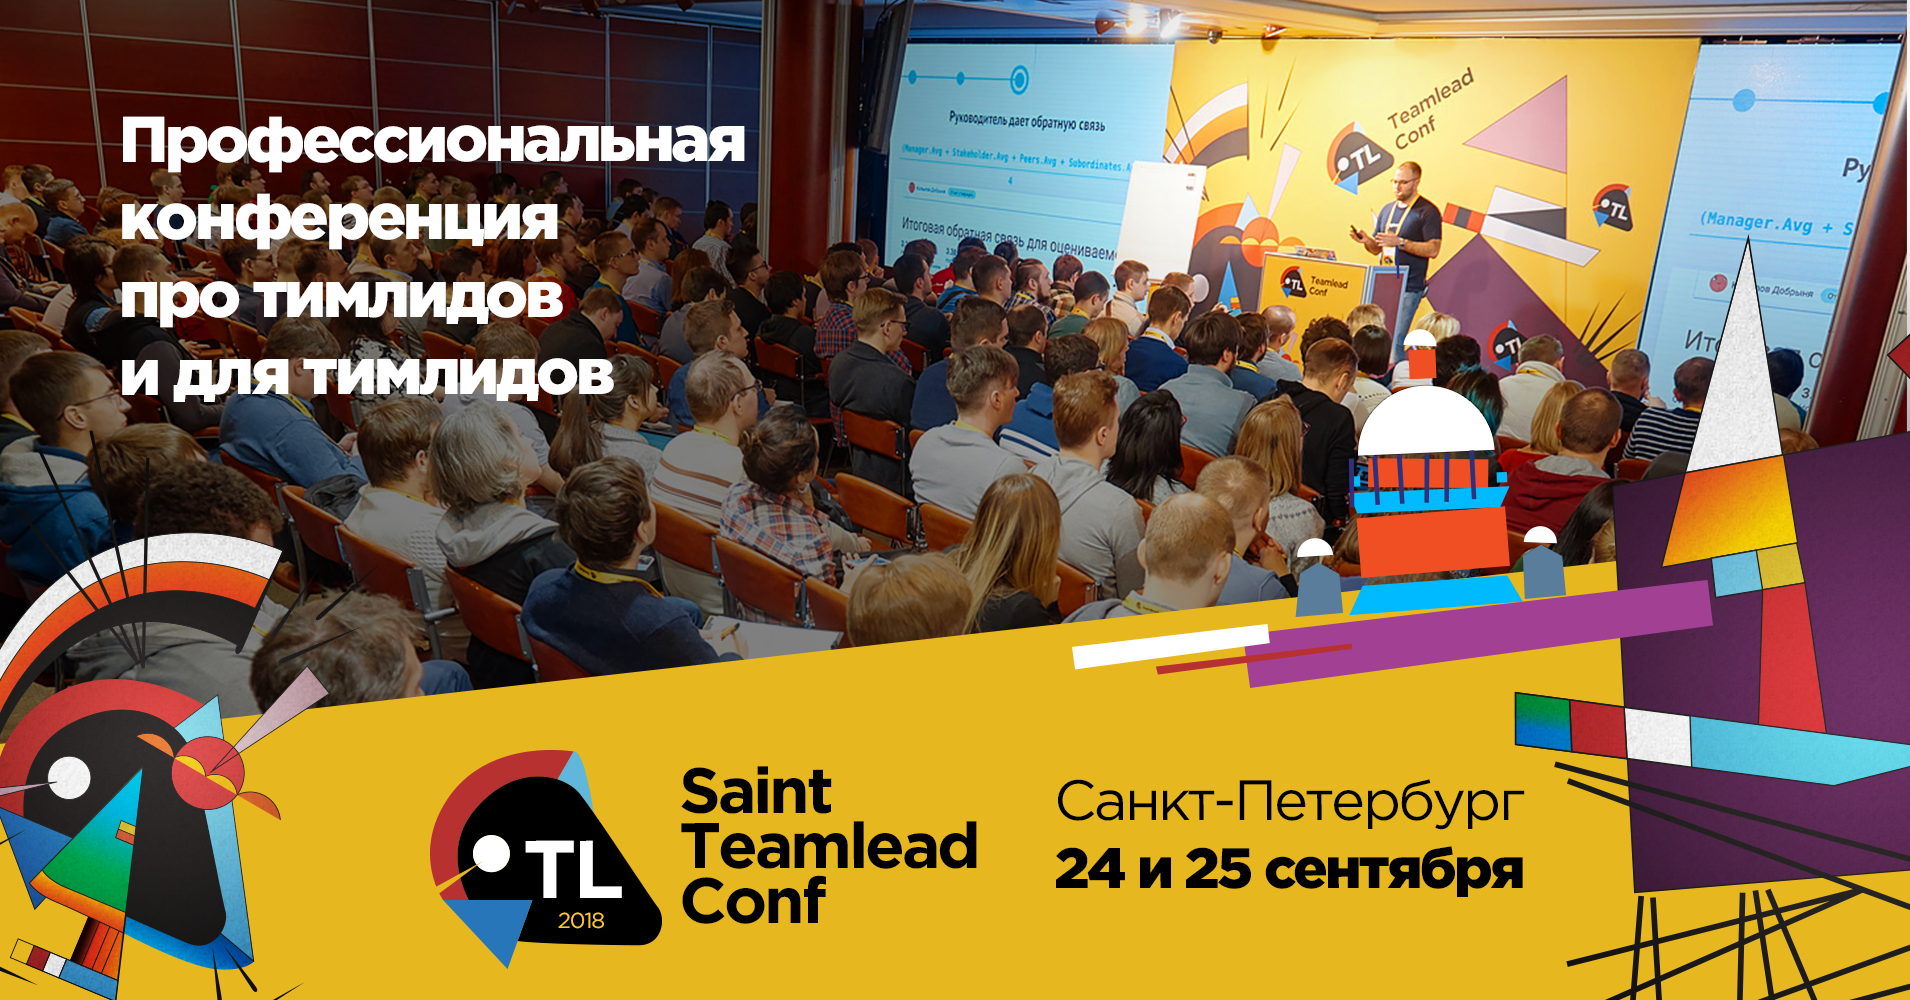 Do the problems of timlides differ in St. Petersburg, we will find out on Saint TeamLead Conf